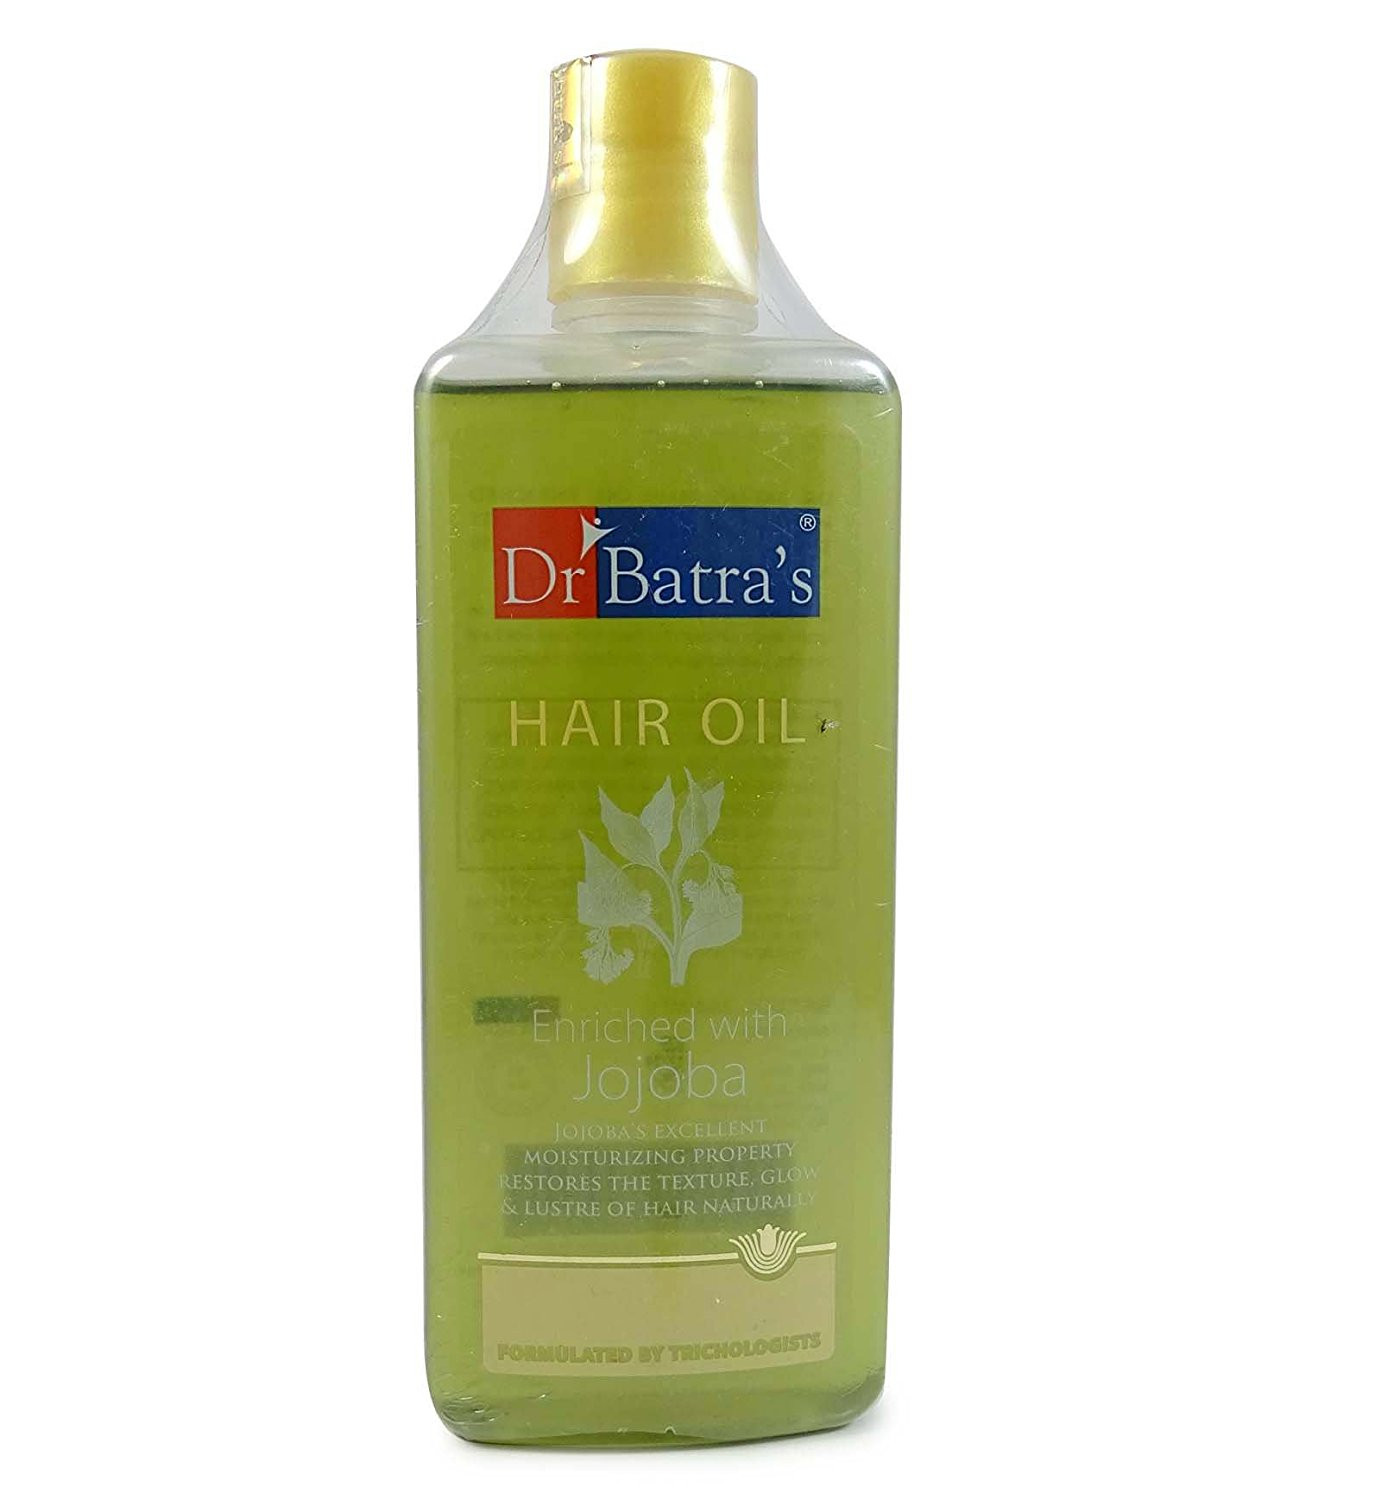 Dr Batras Enriched with Jojoba Hair Oil, 200ml